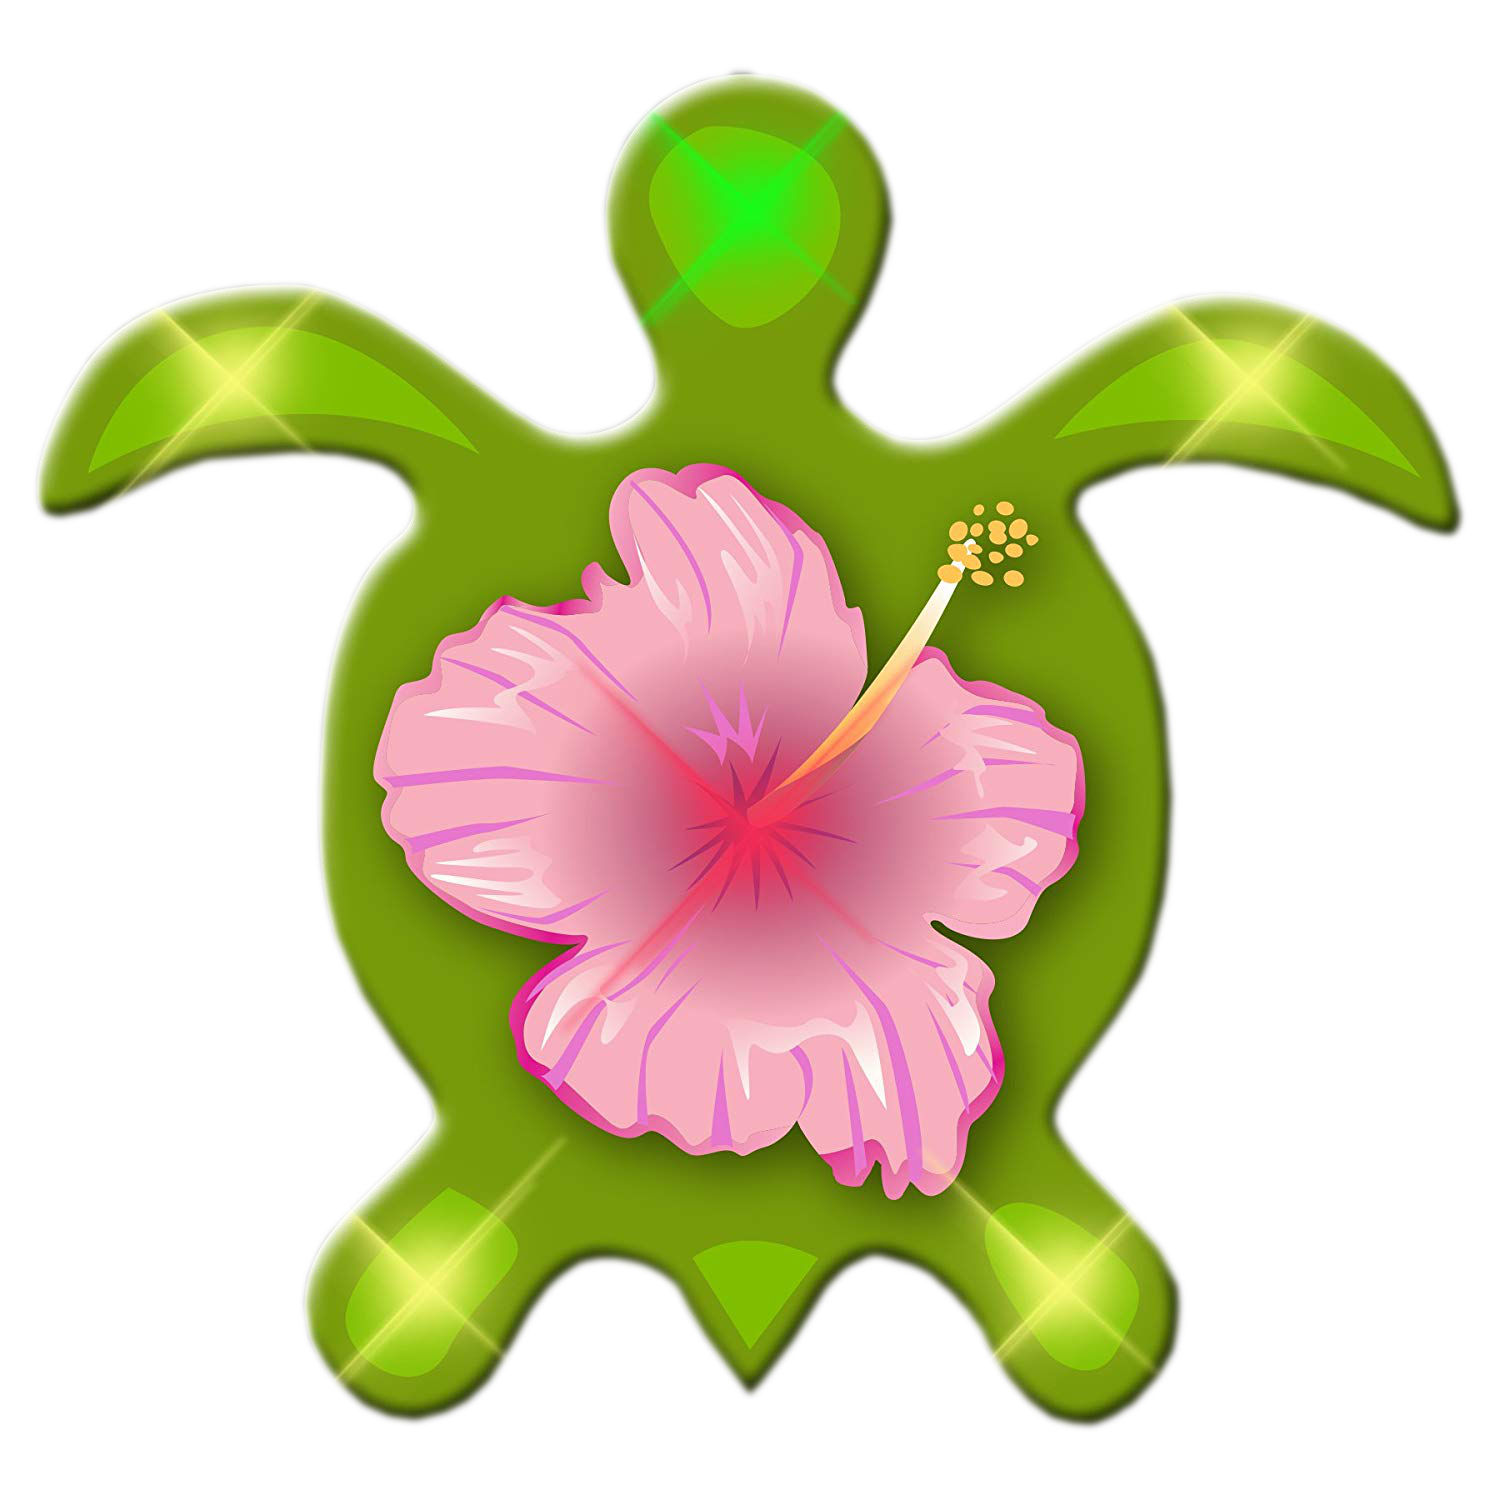 Sea Turtle Flashing Body Light Lapel Pins All Body Lights and Blinkees